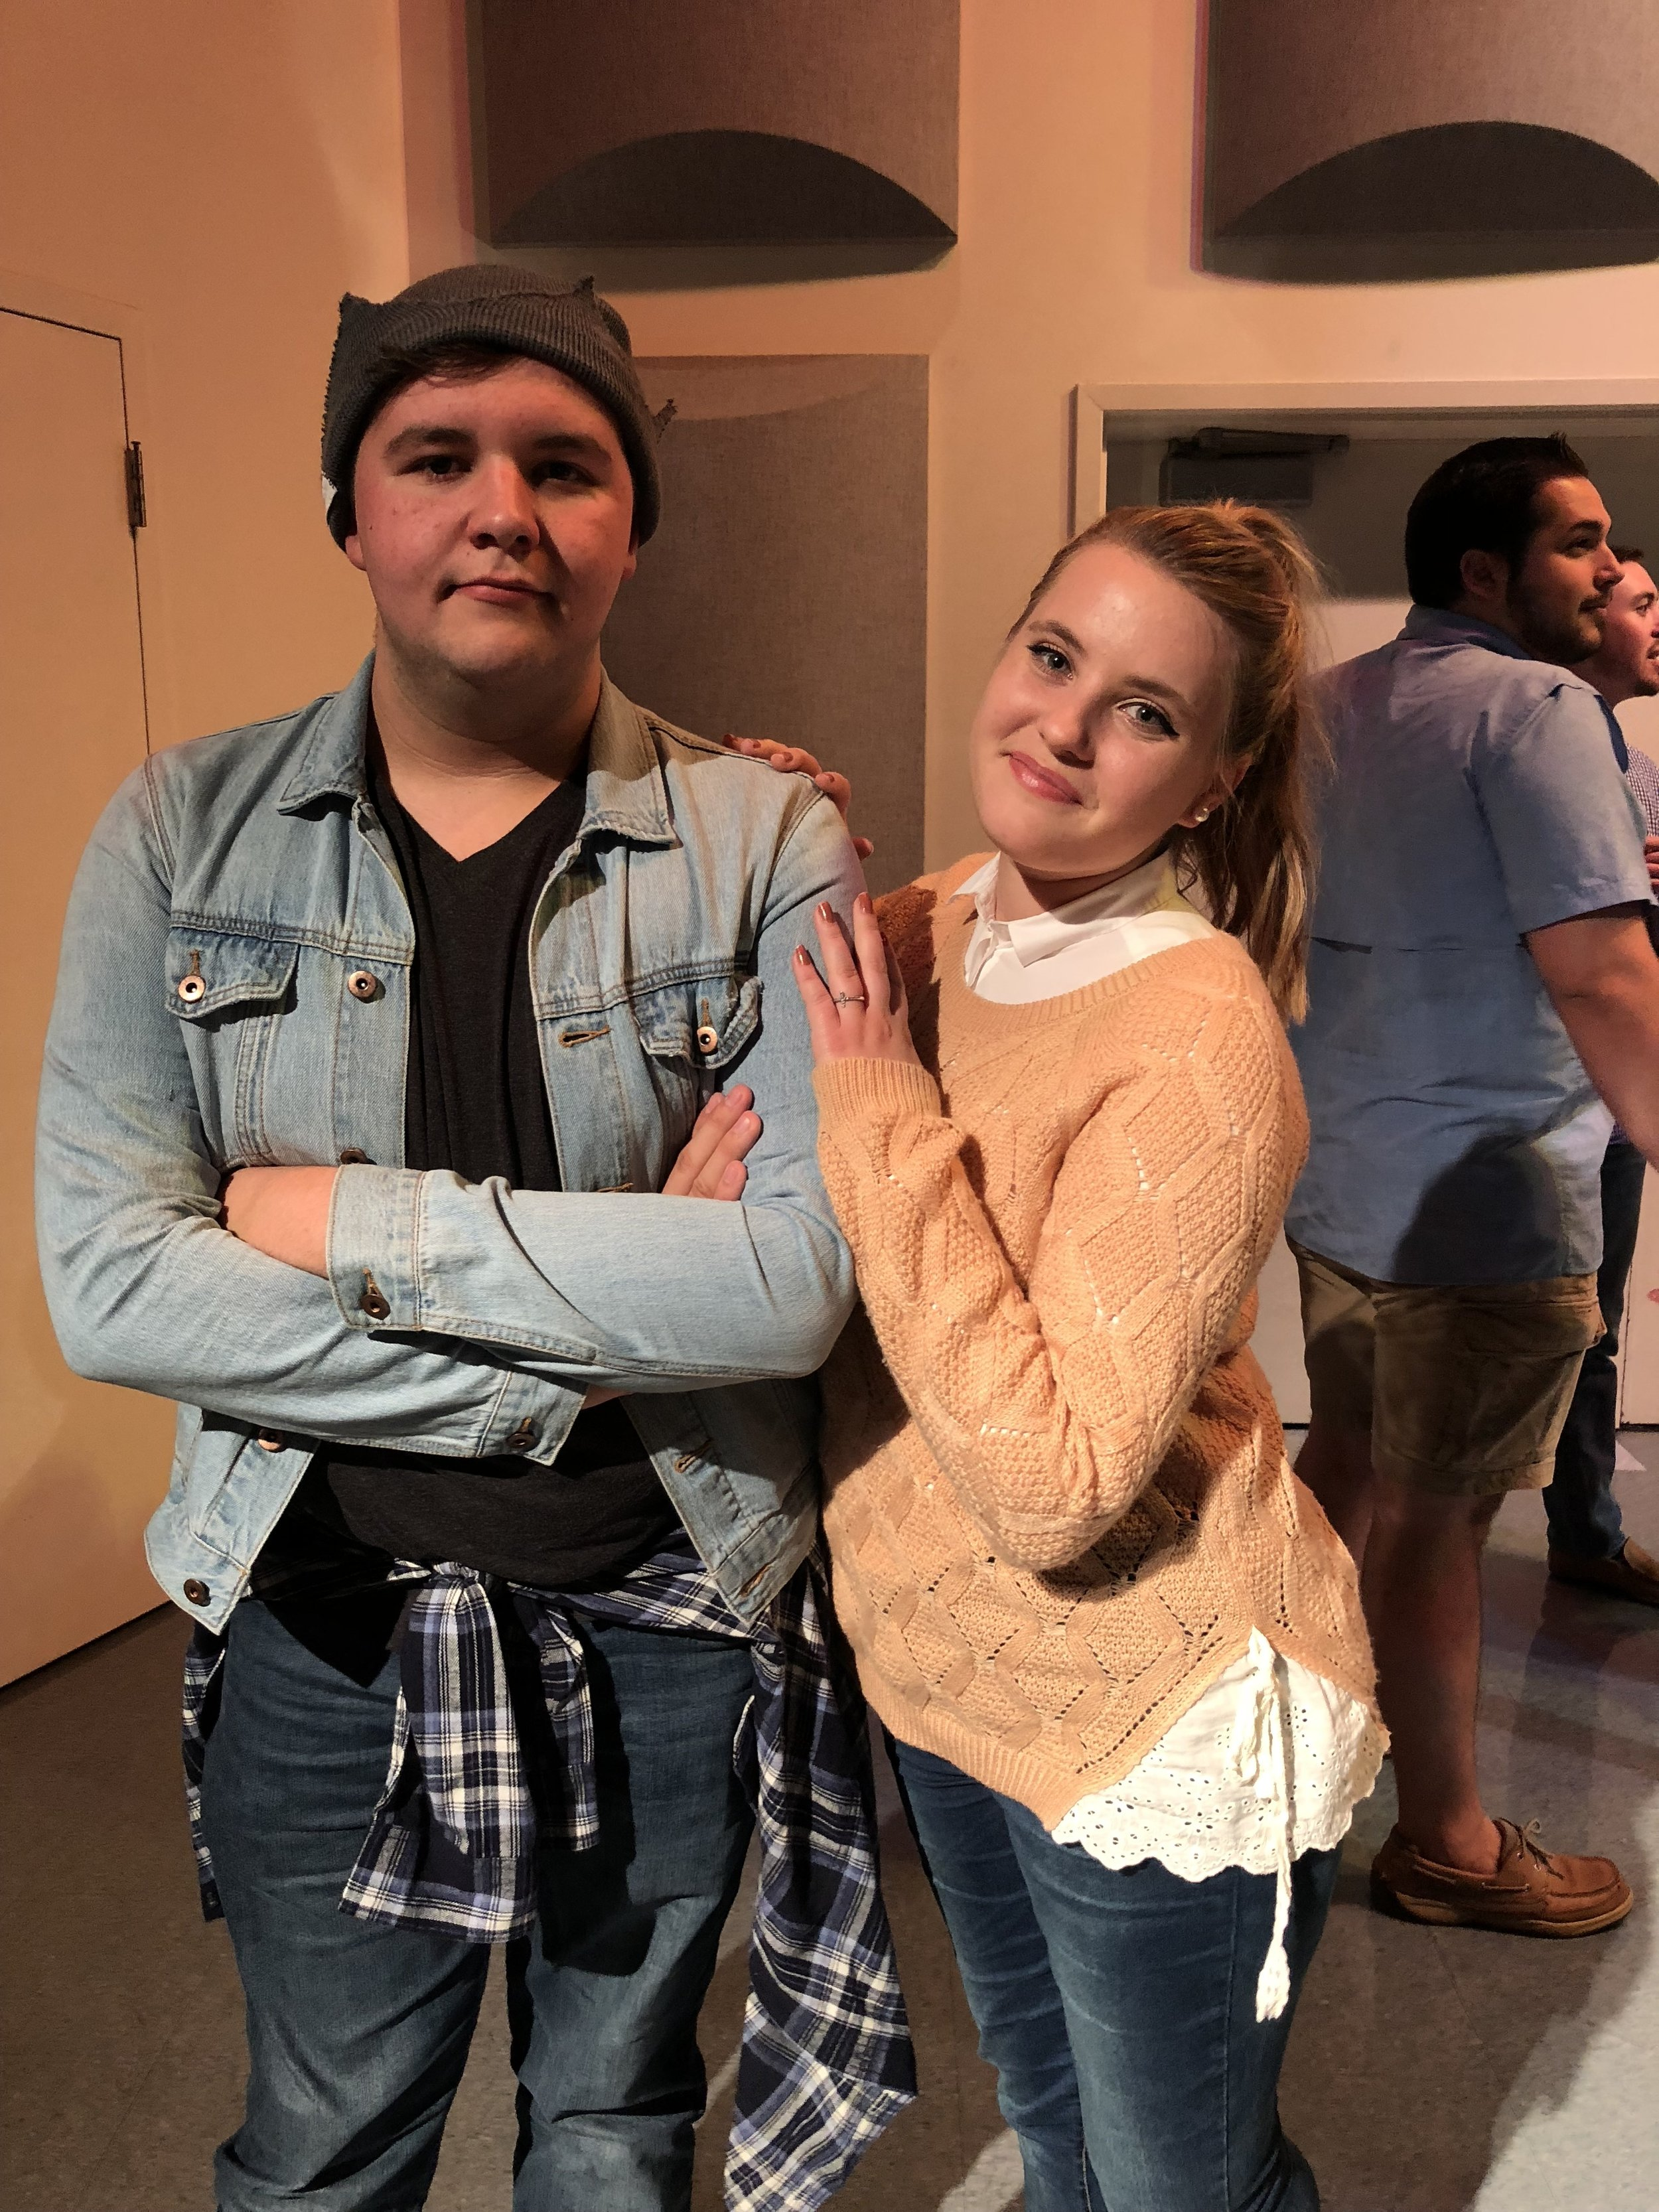 Freshmen Wyatt Duncan and Marlee Daniel pose as the popular couple from the CW's hit show: Riverdale.